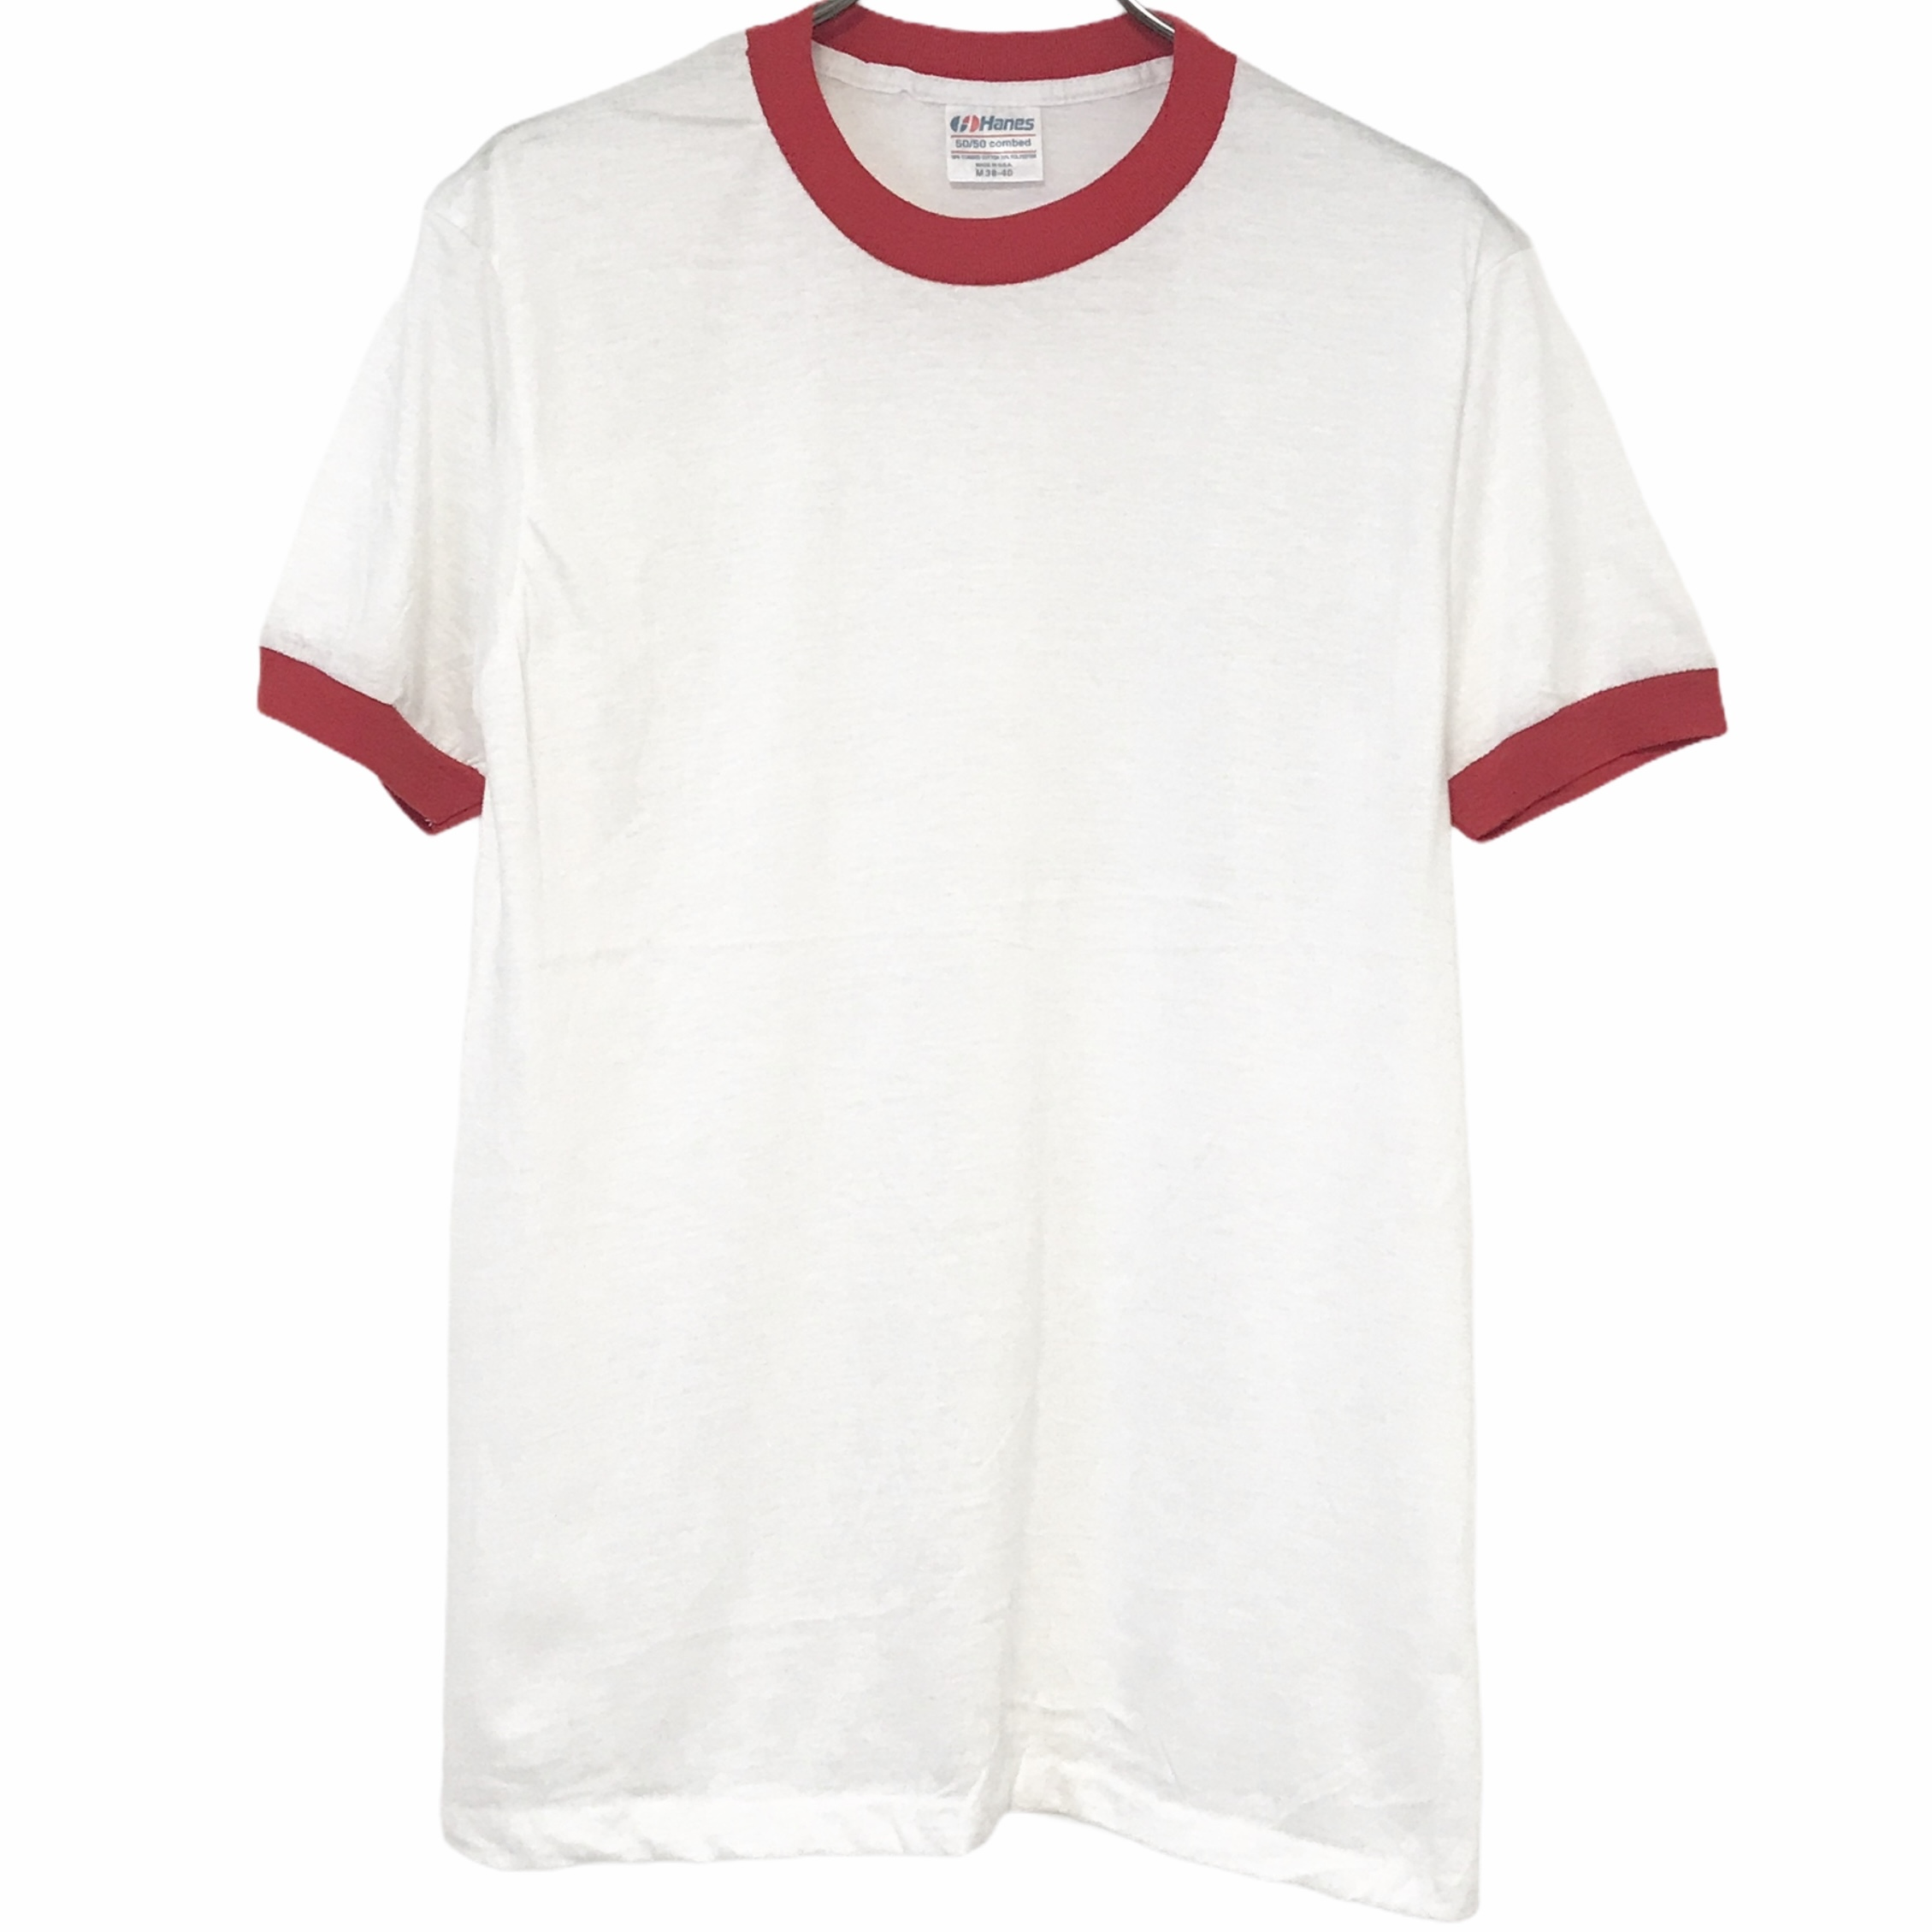 Dead Stock! 80's Hanes Ringer T-shirt made in USA Red